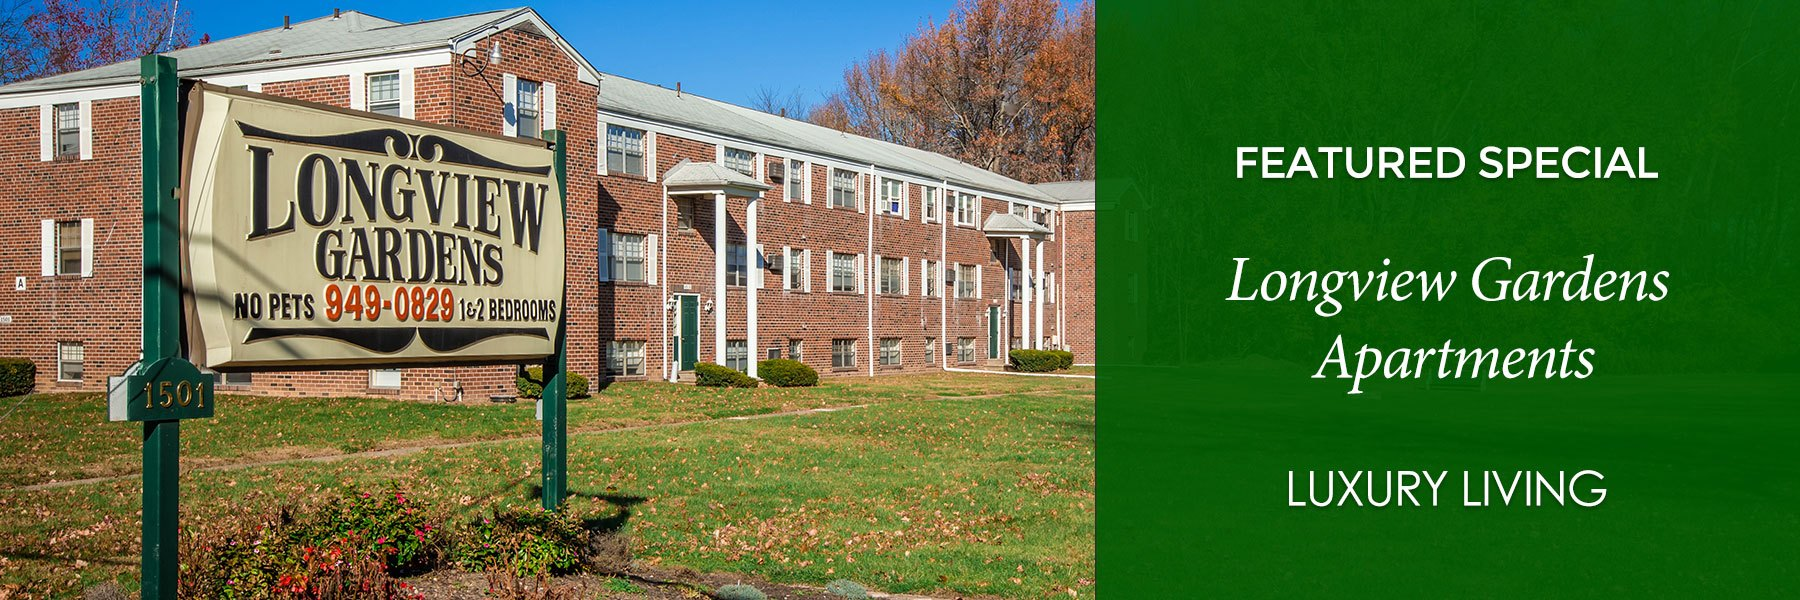 Longview Garden Apartments For Rent in Levittown, PA Specials